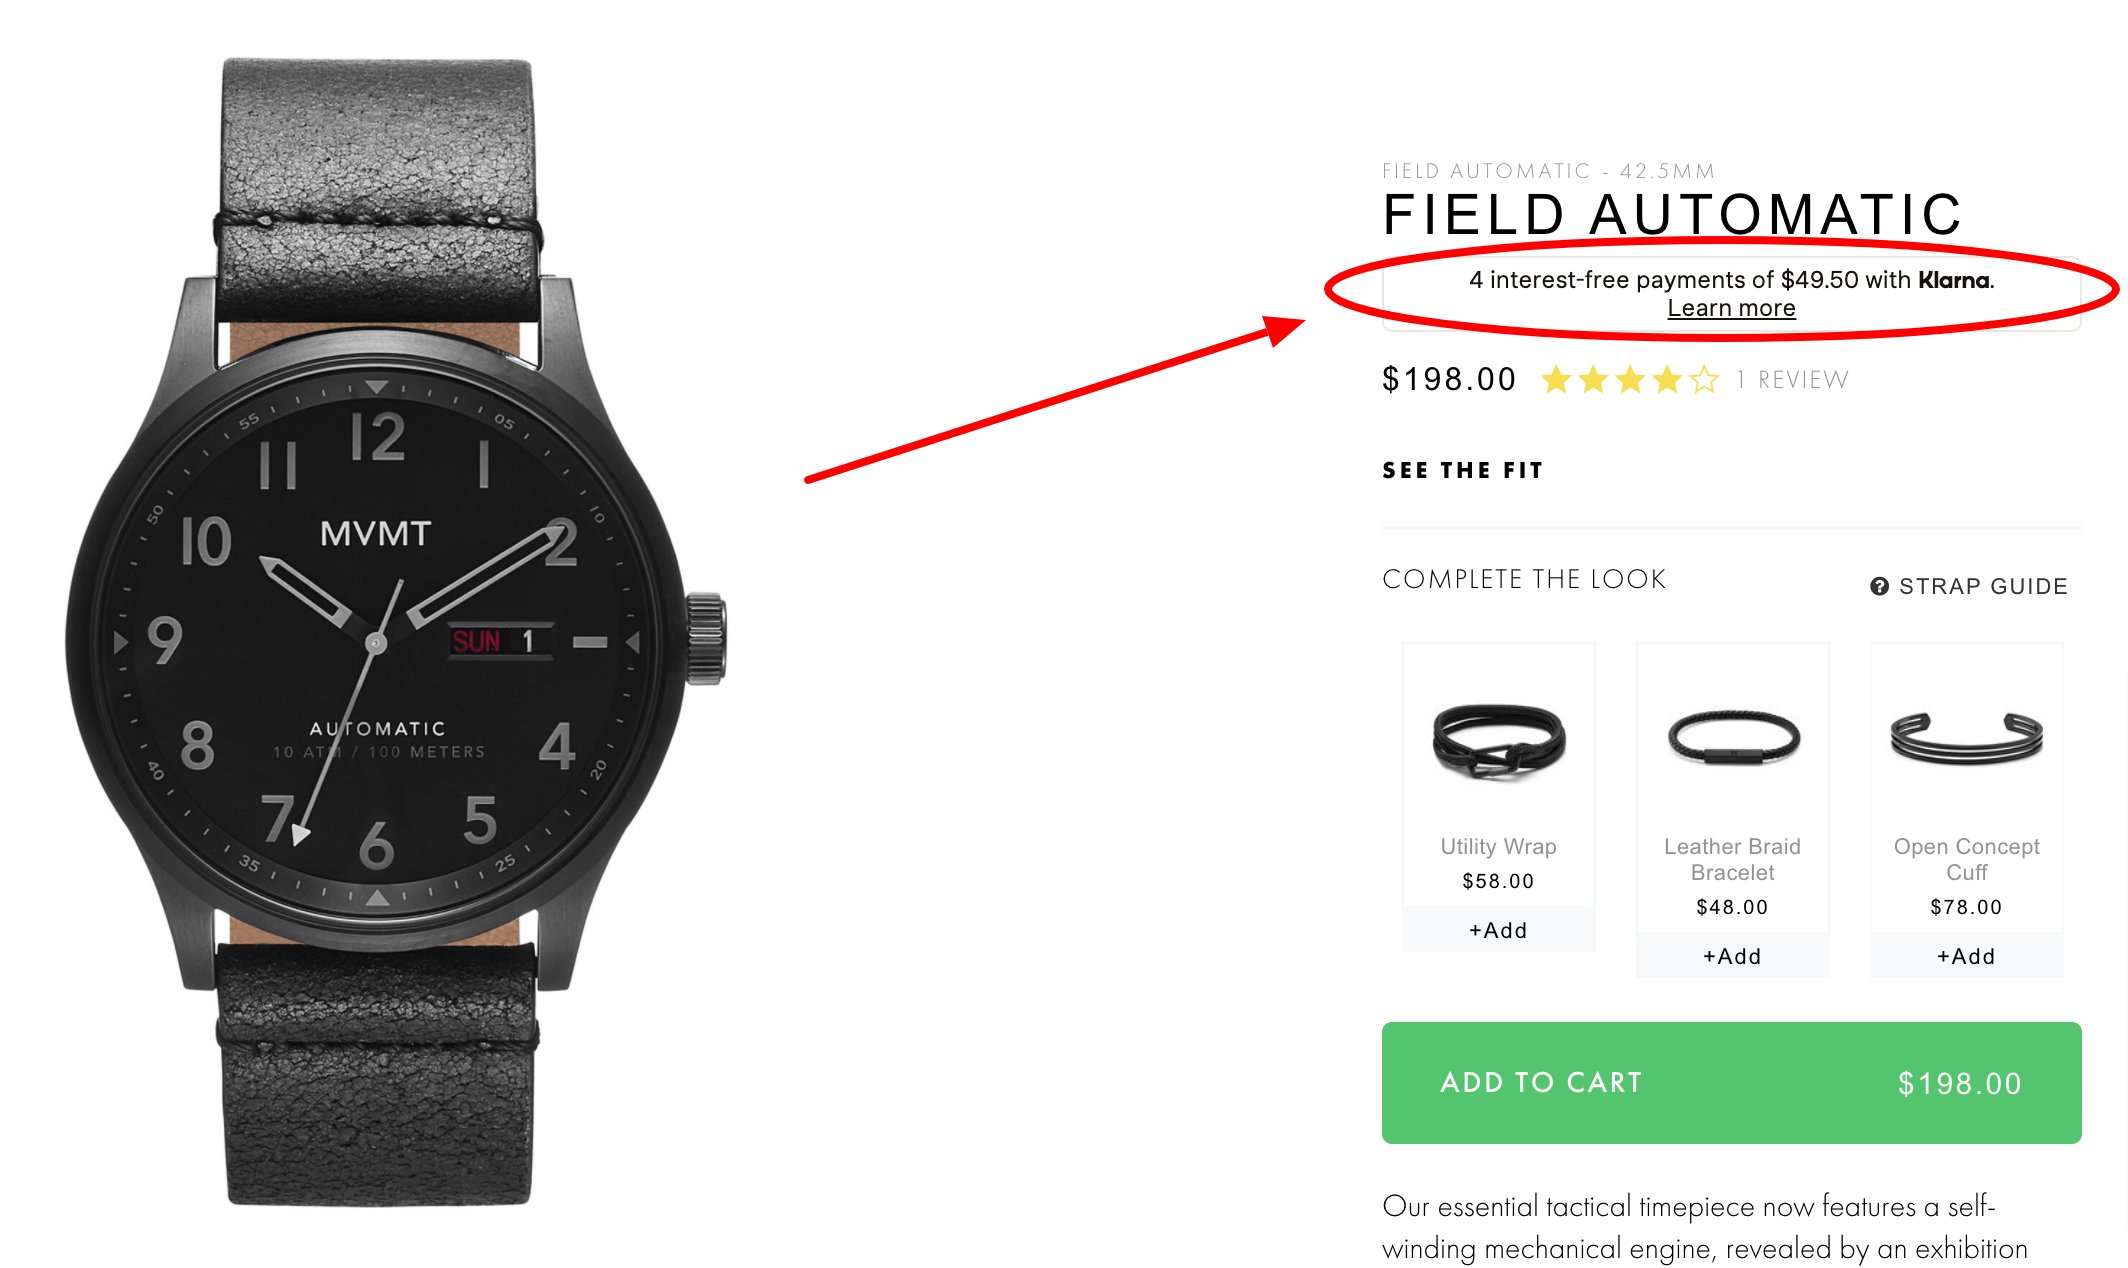 MVMT field automatic watch product page installment payment plan